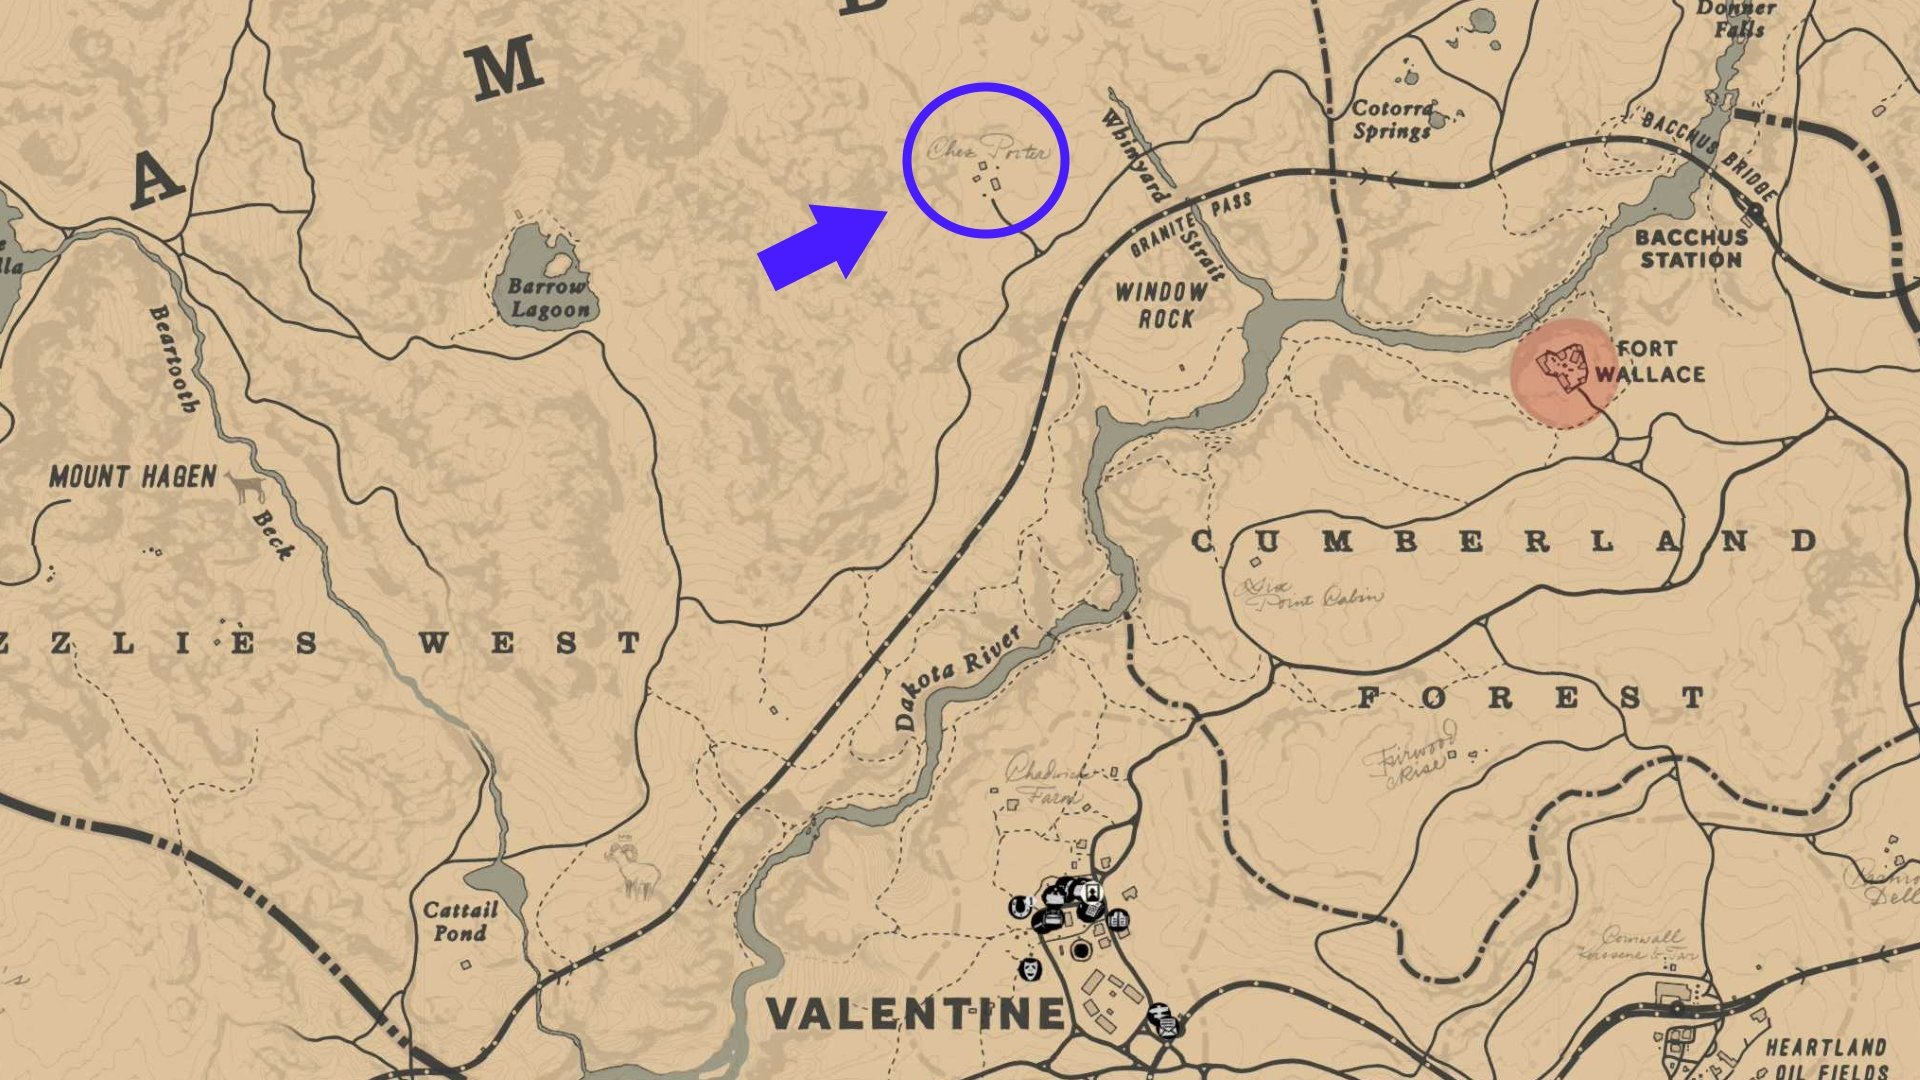 The weapon location - Where to find the pump action shotgun in RDR2